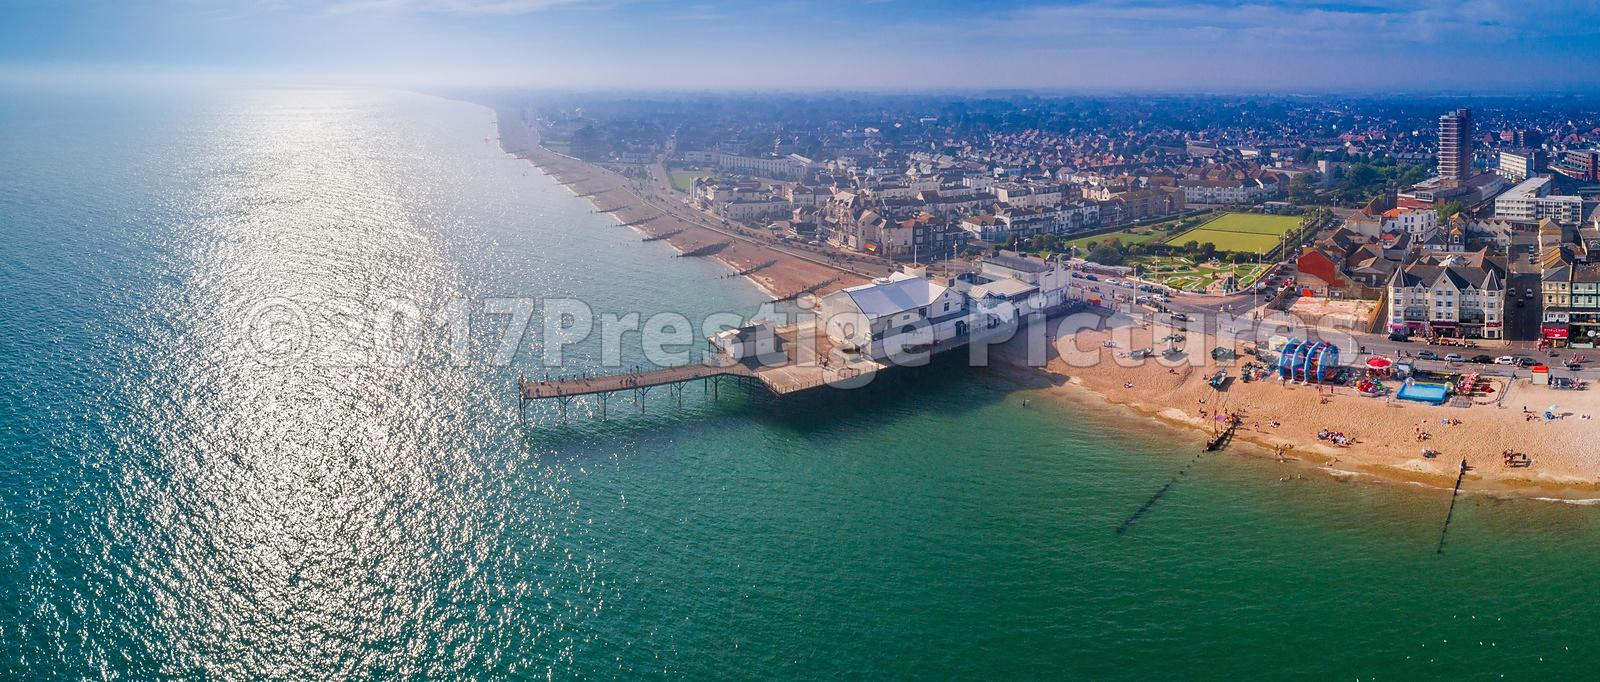 Aerial View of Bognor Regis Beach and Pier